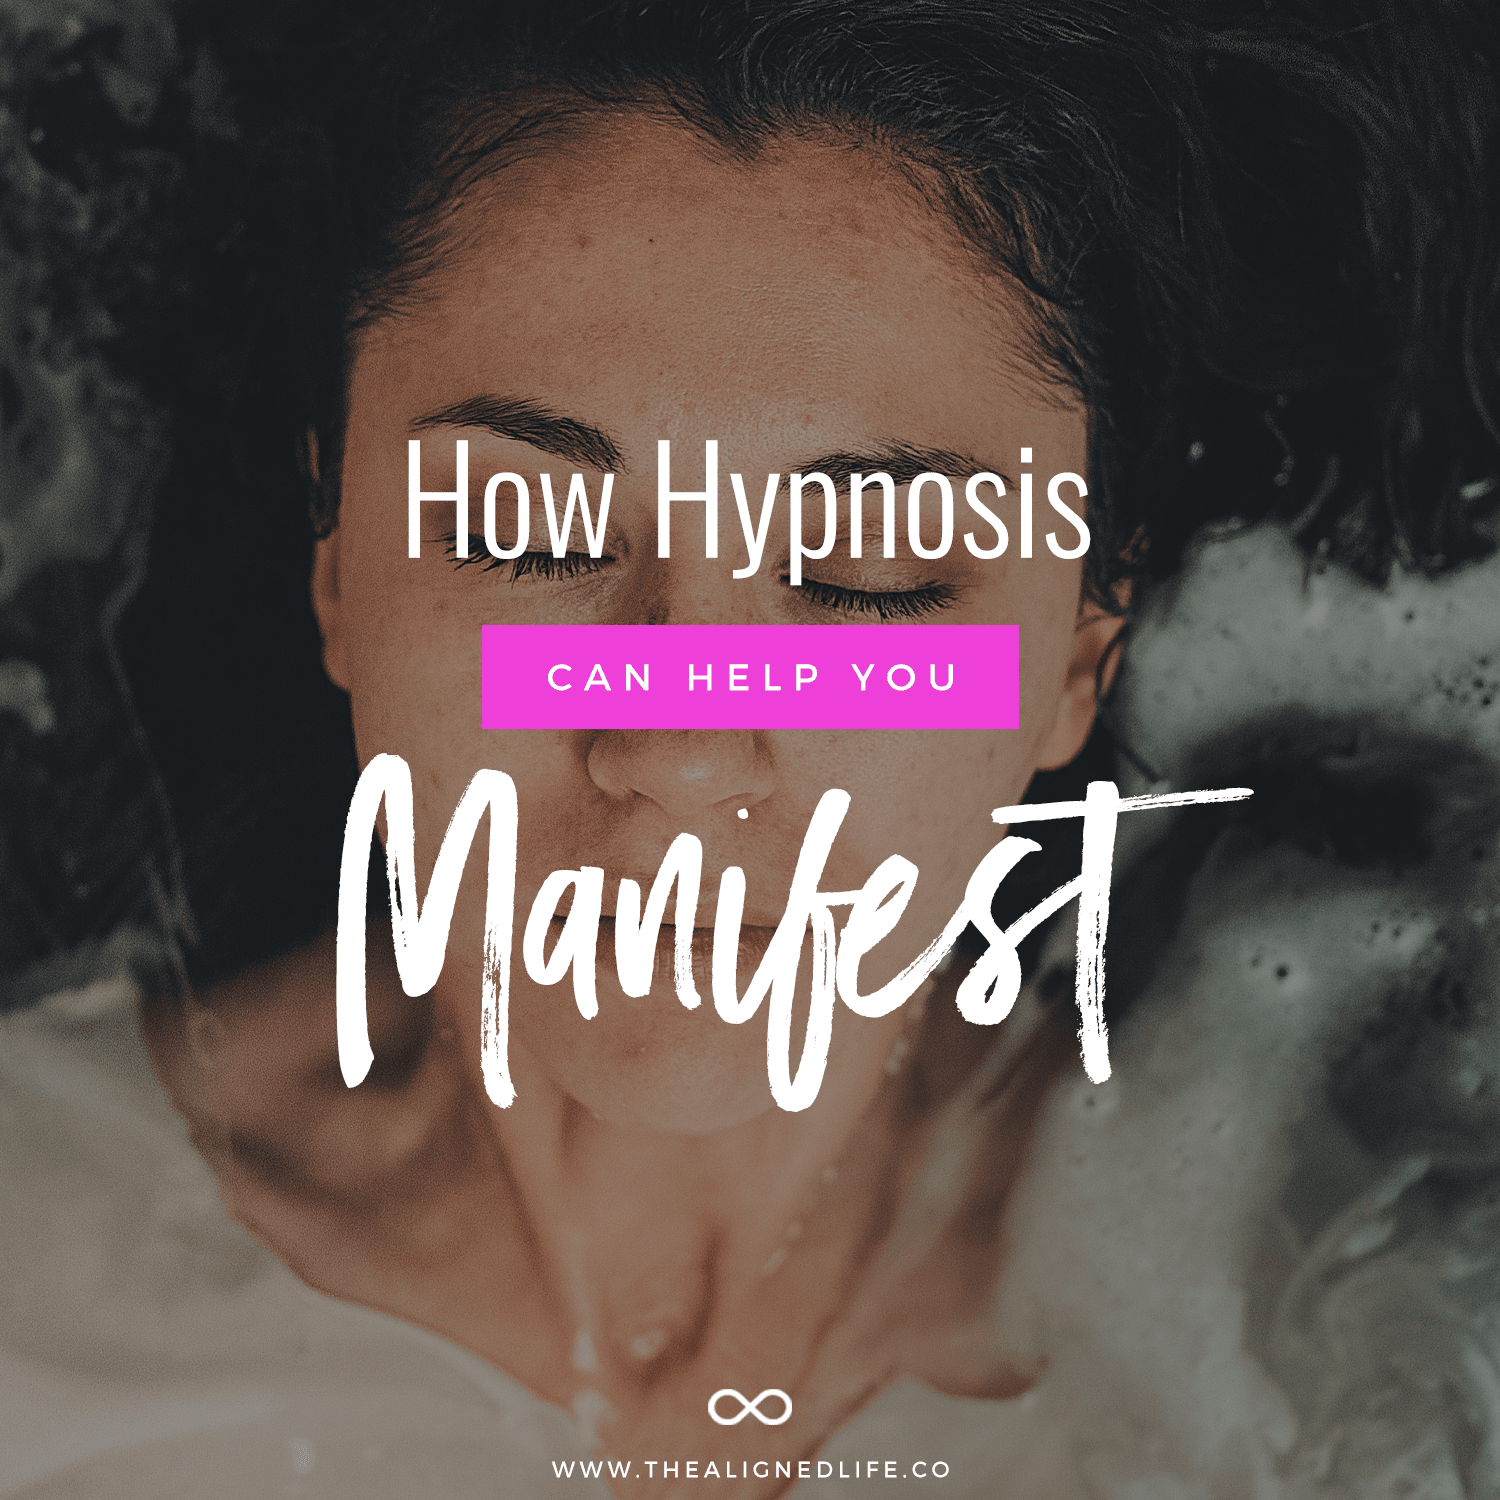 How Hypnosis Can Help You Manifest